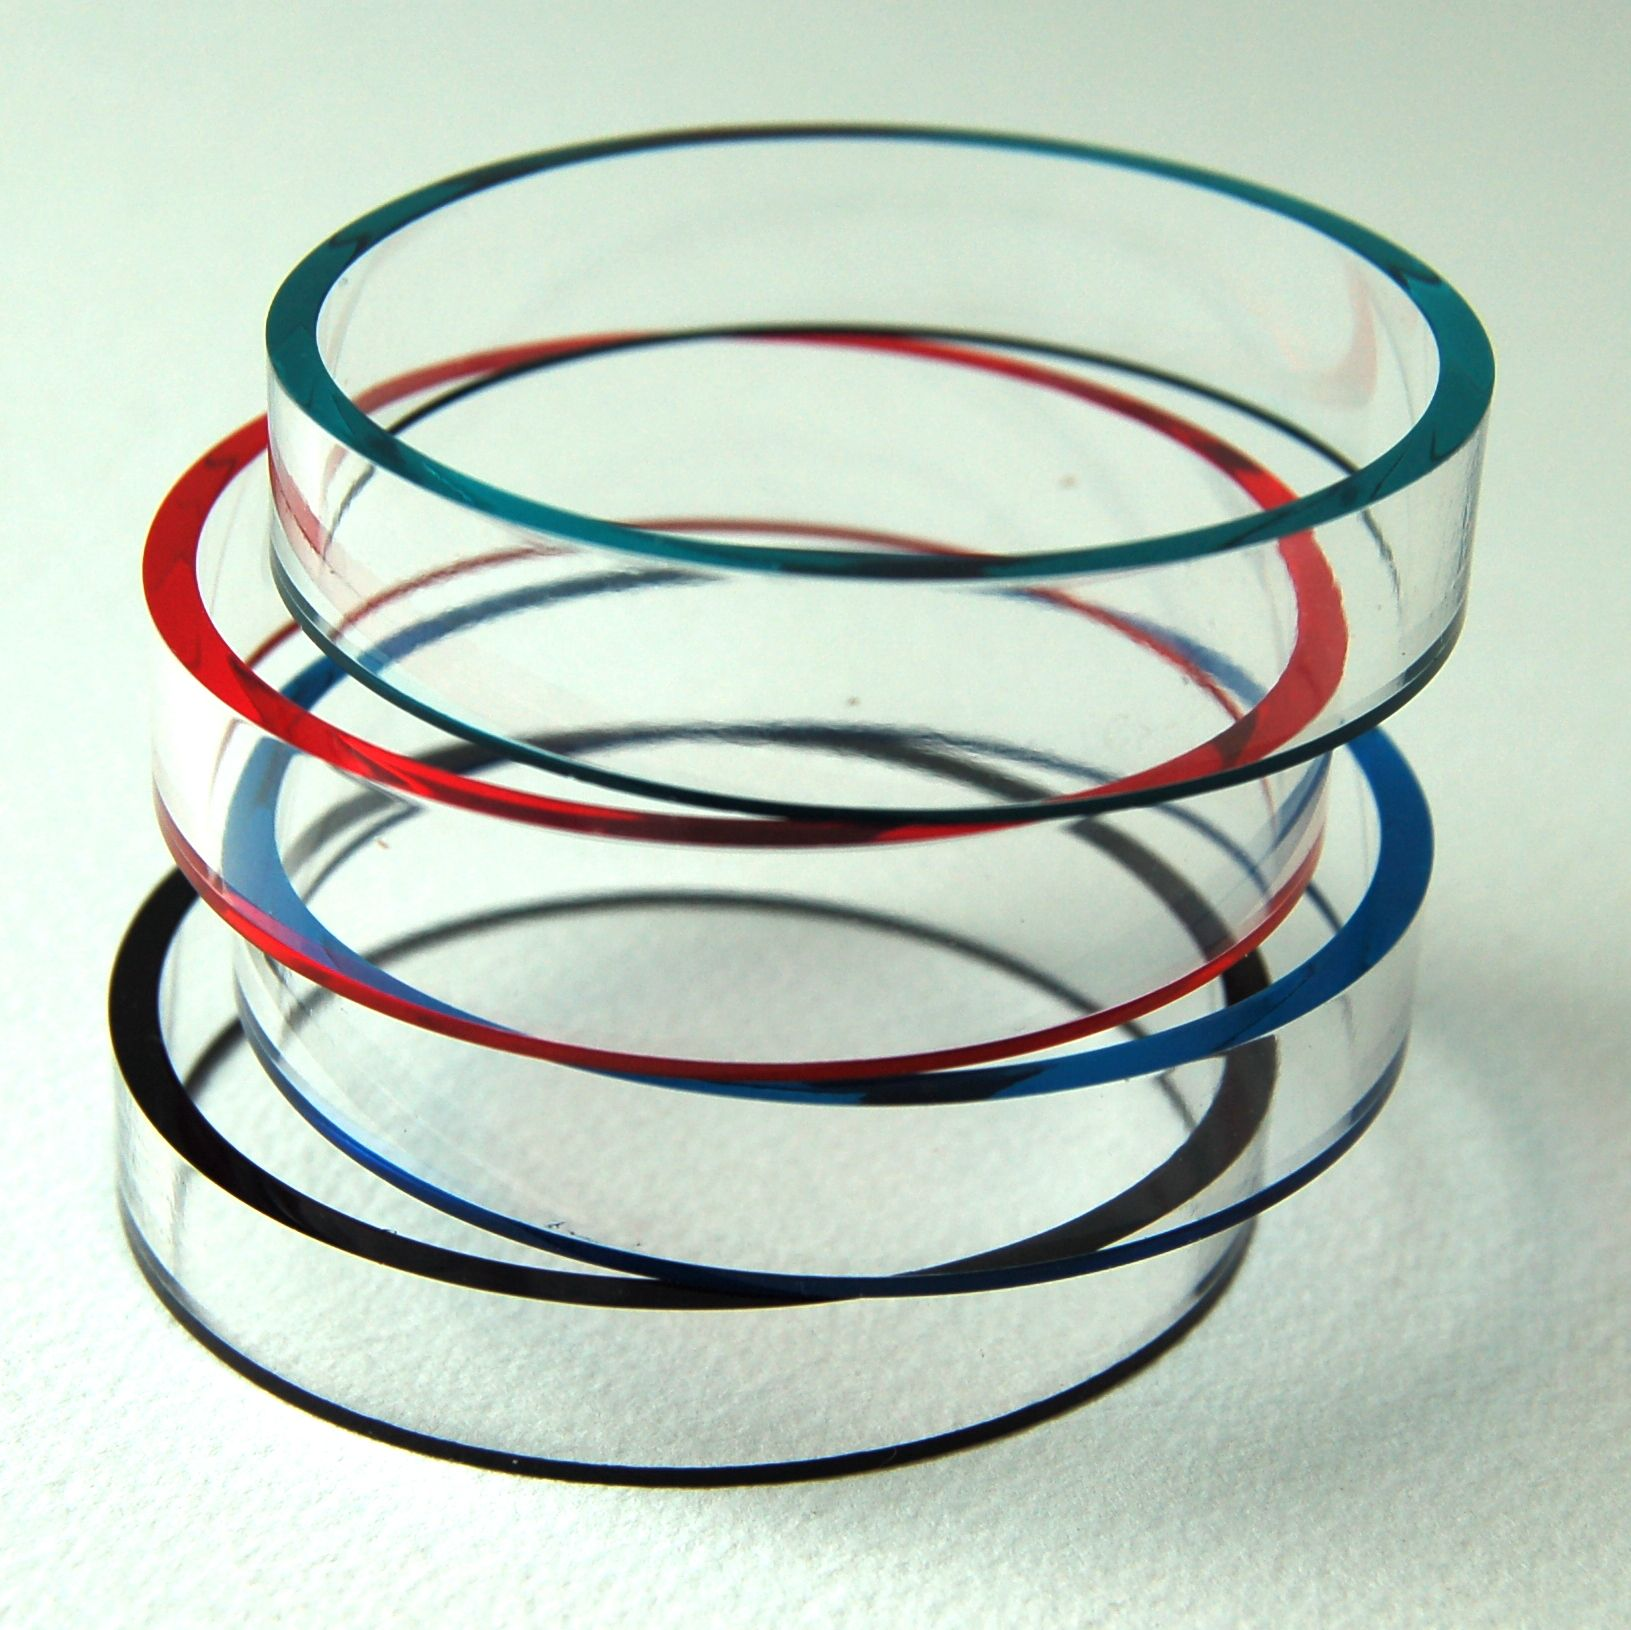 bangles stock fashion accessories acrylic product